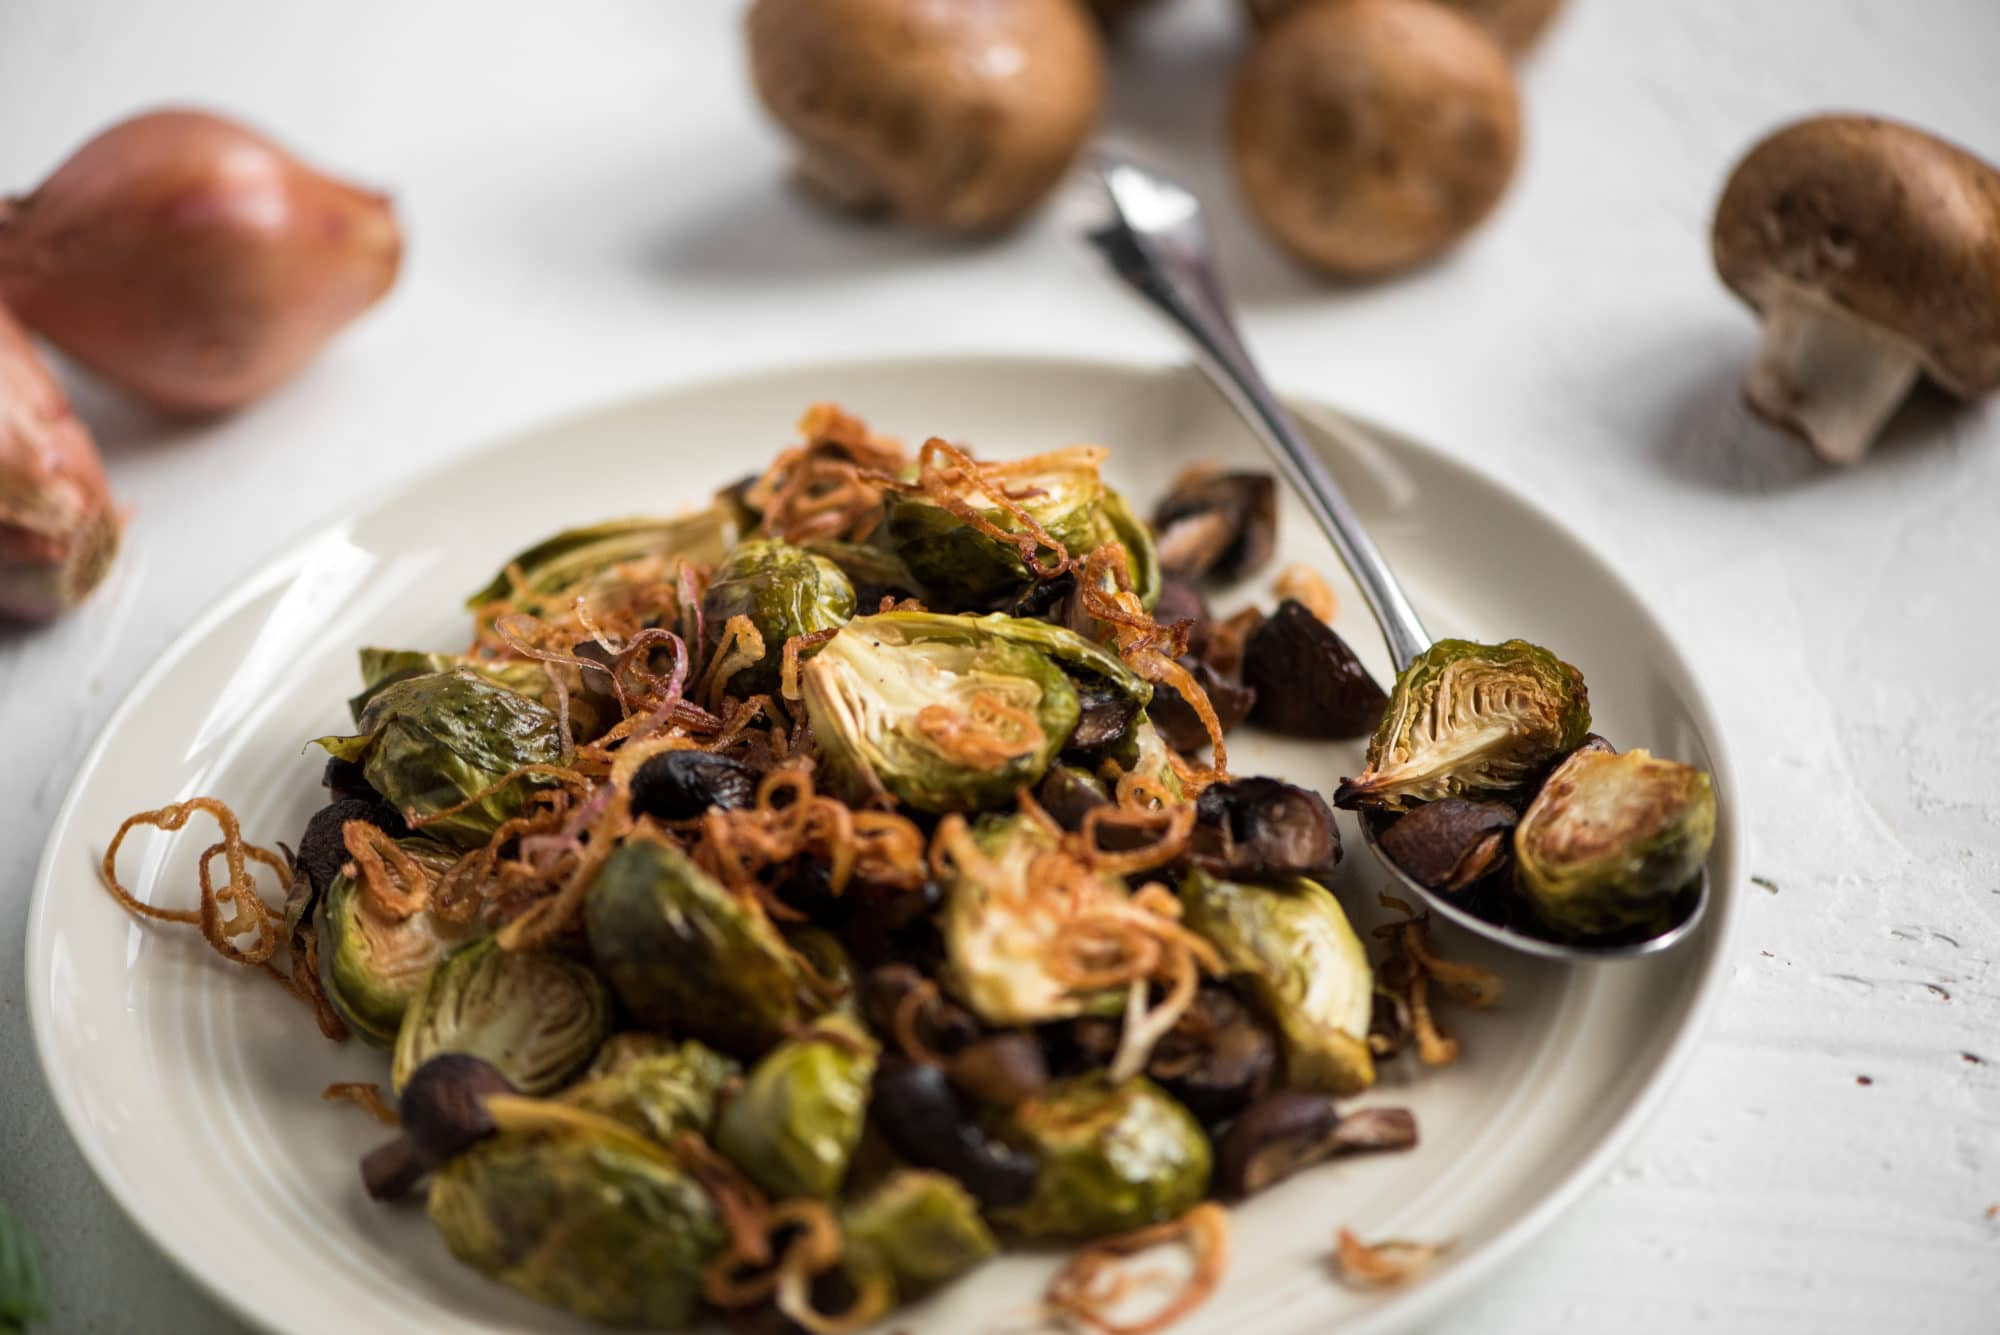 Caramelized Brussels sprouts with mushrooms and fried shallots